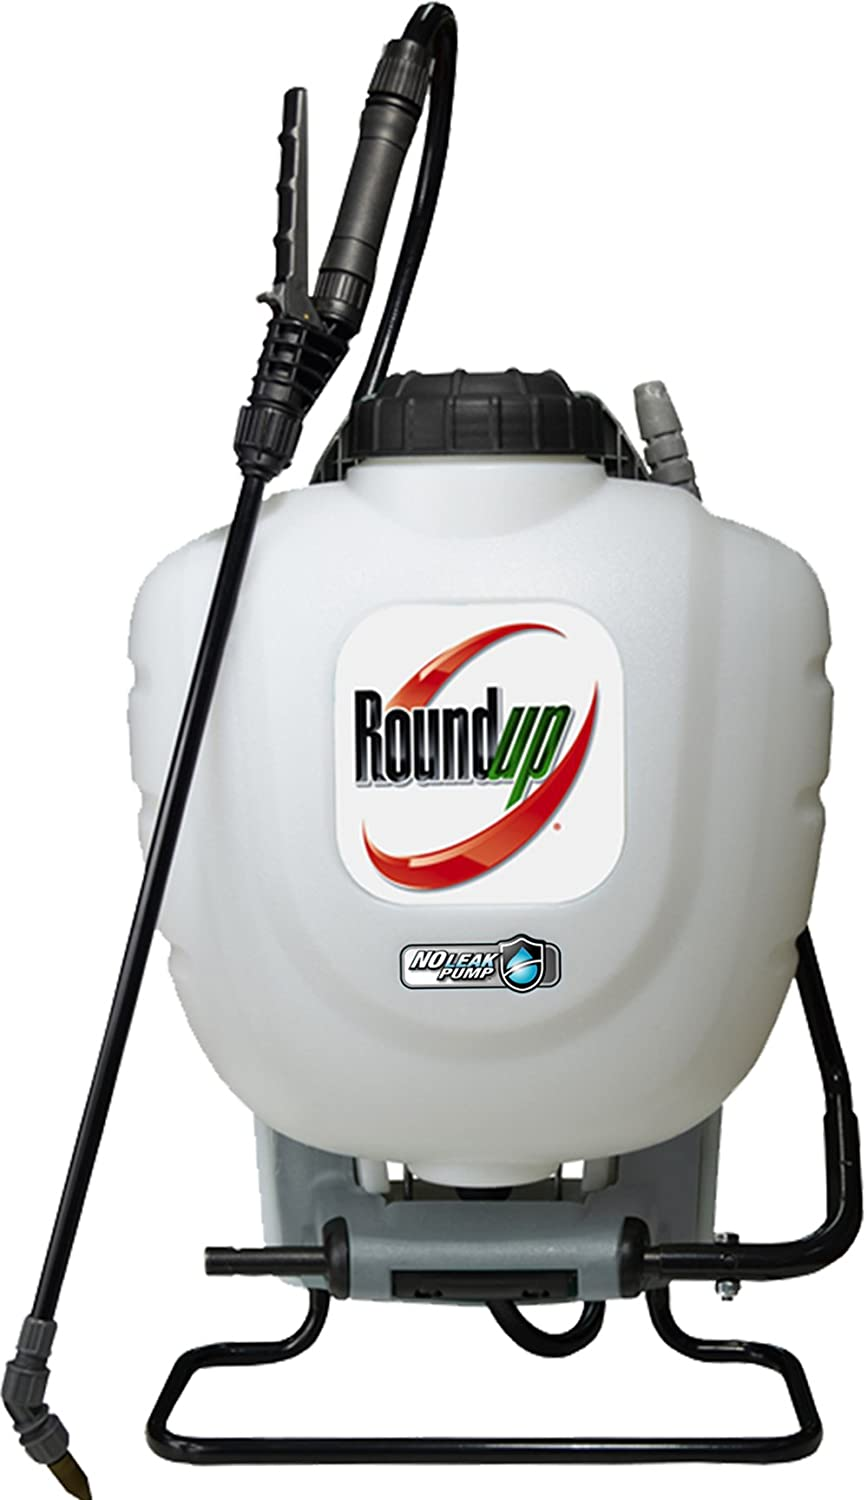 Roundup No-Leak Backpack Sprayer